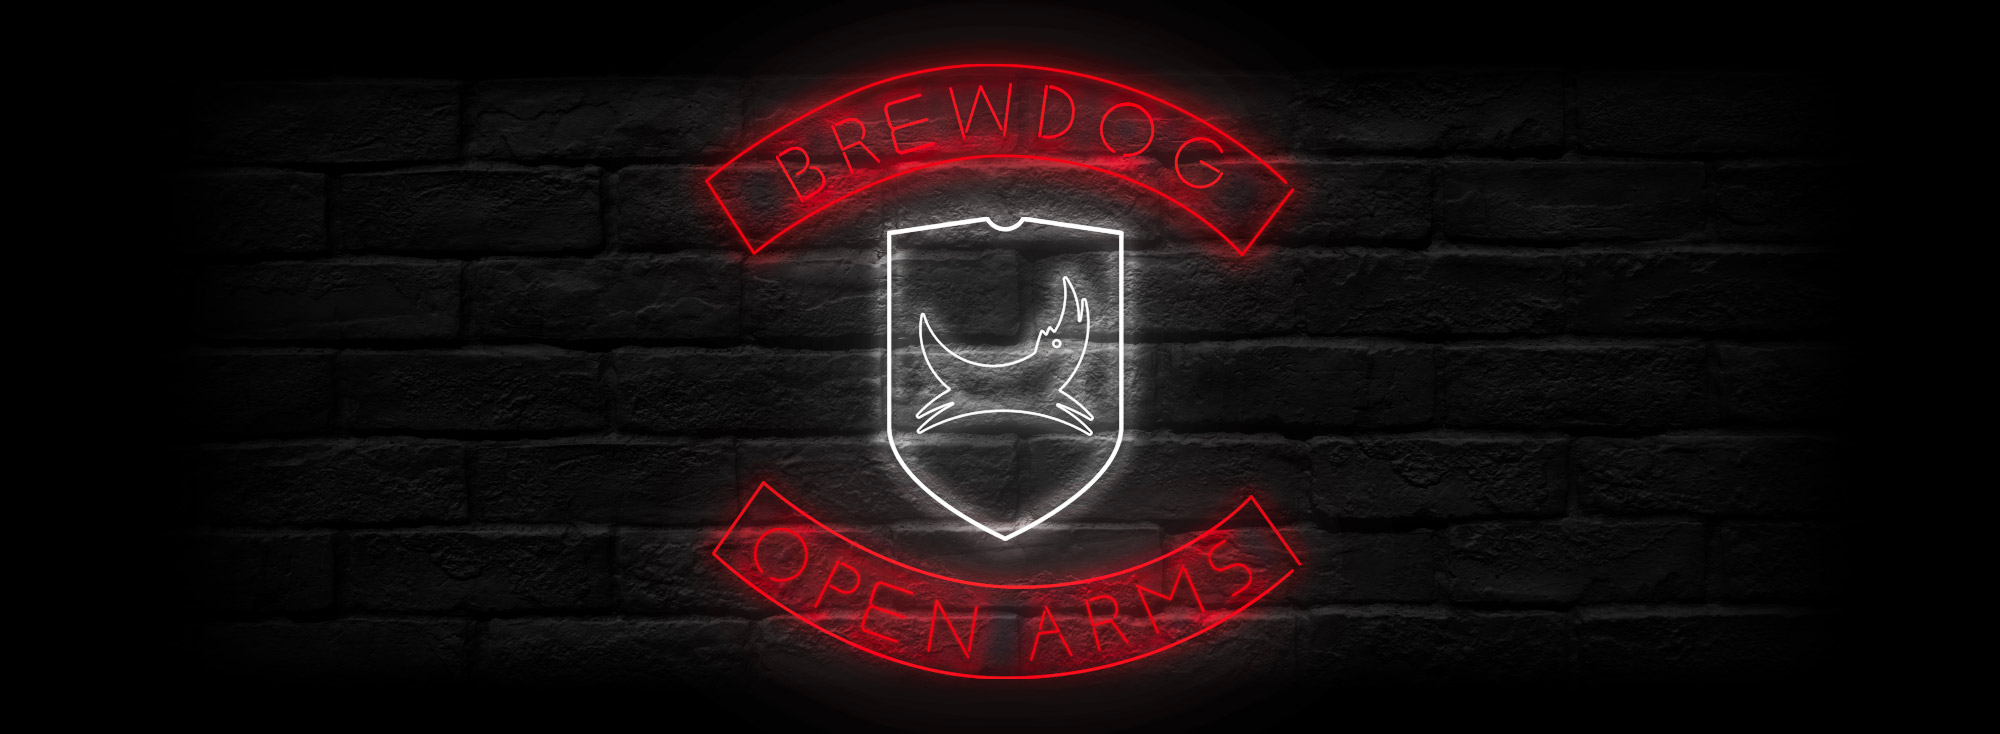 BrewDog Open Arms